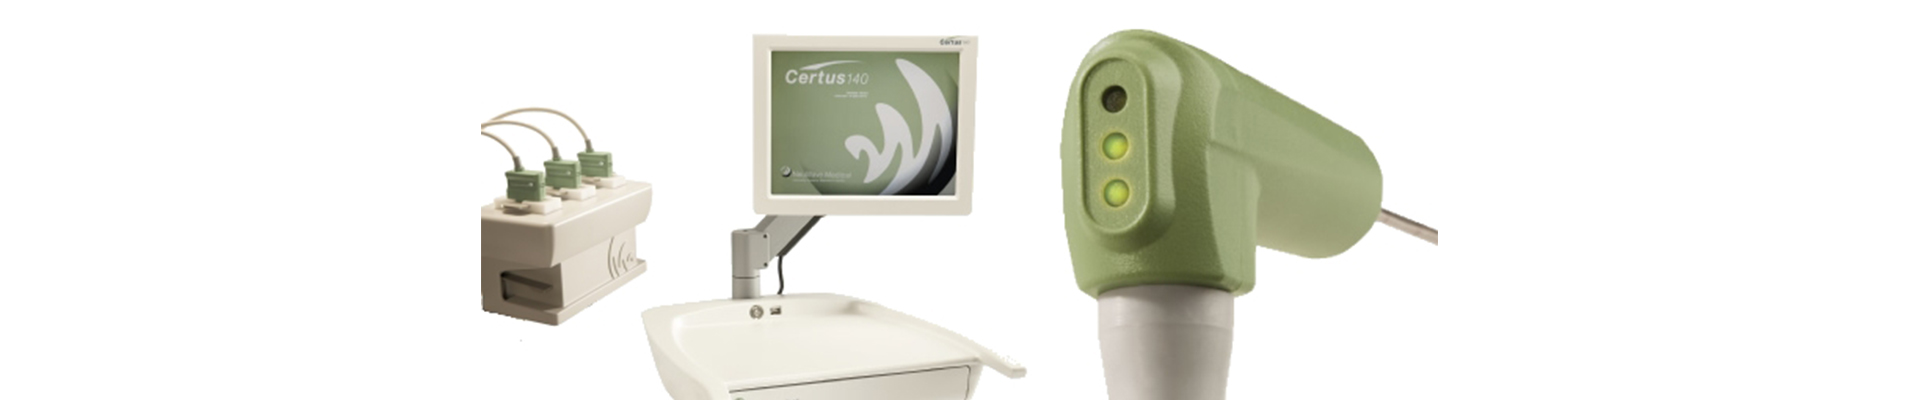 Certus cooling system from NeuWave Medical Inc.